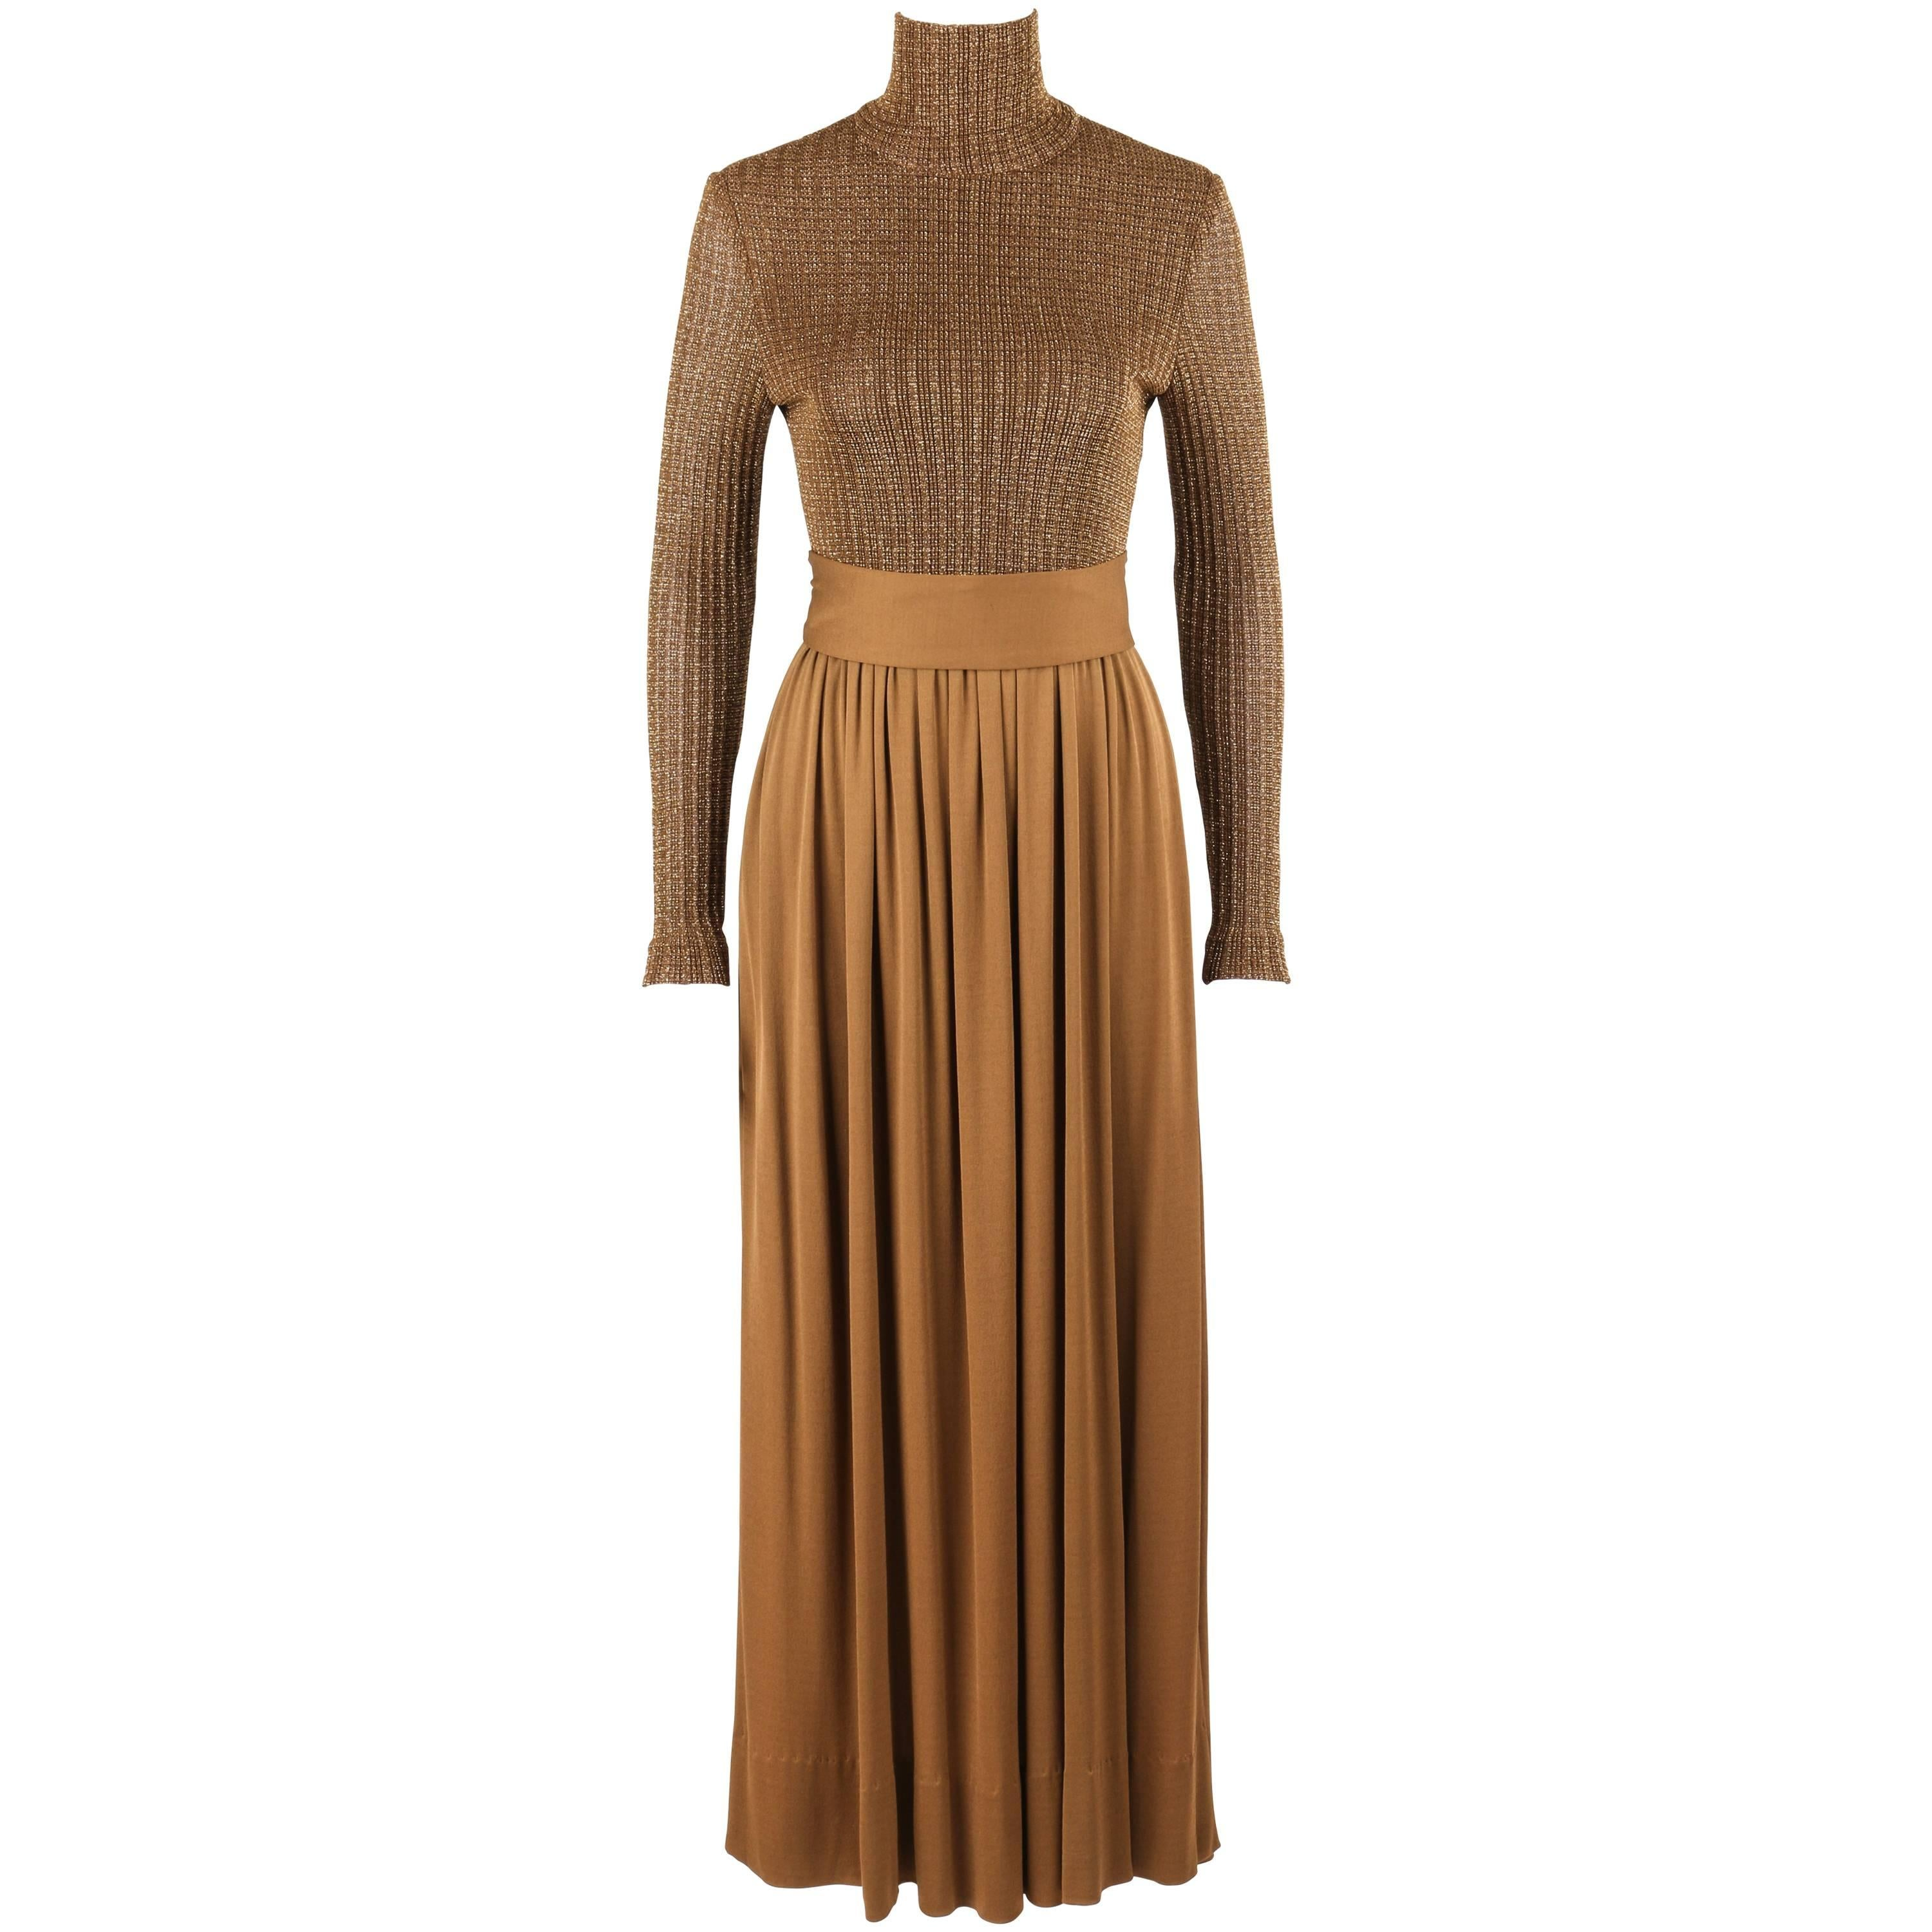 RODRIGUES c.1970's Bronze Metallic Knit Long Sleeve Cocktail Evening Gown